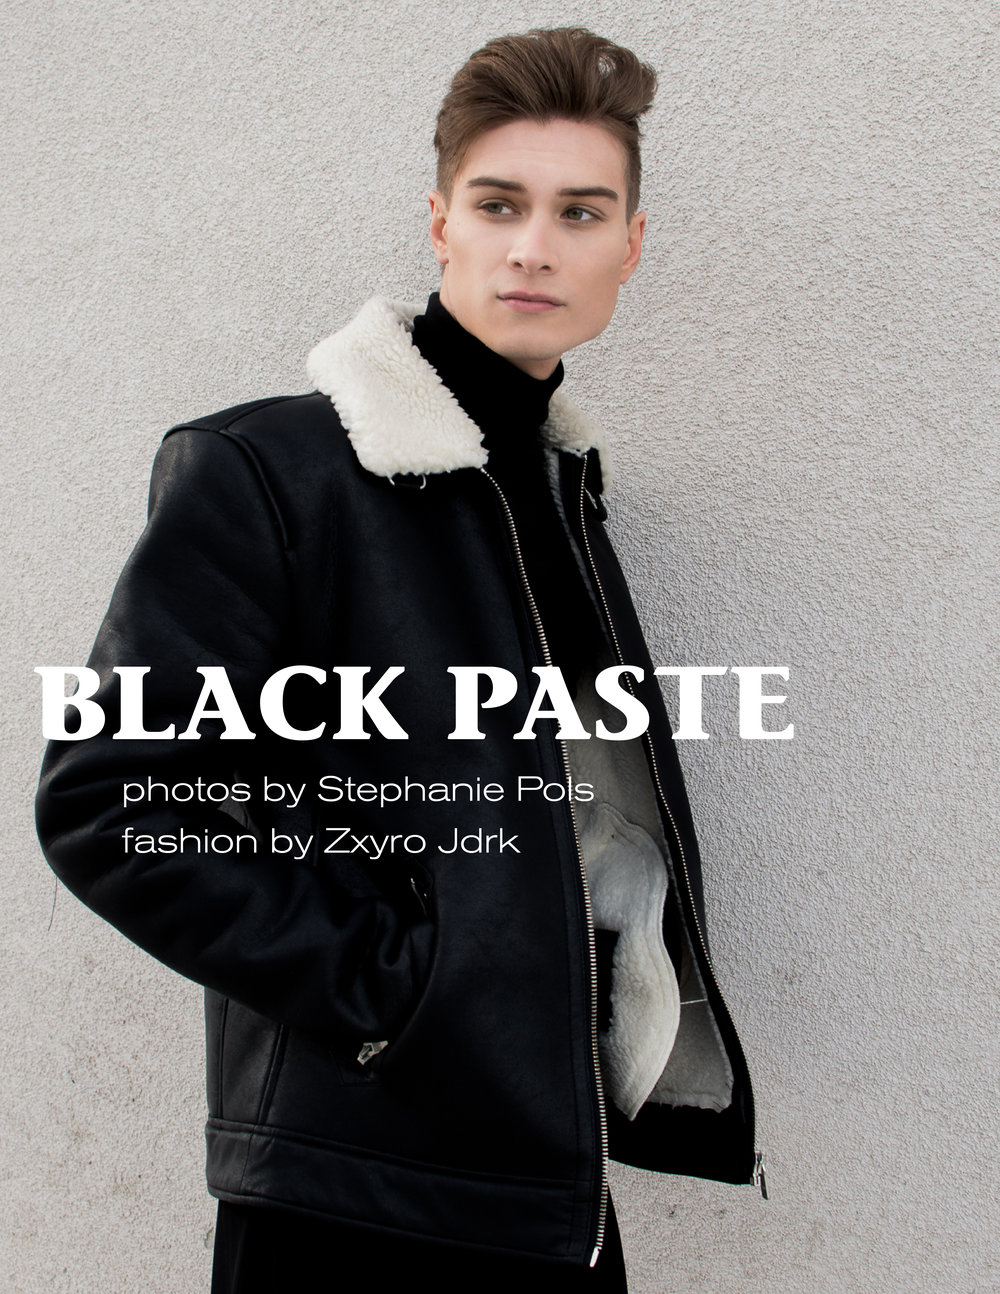 black-paste-stephanie-pols